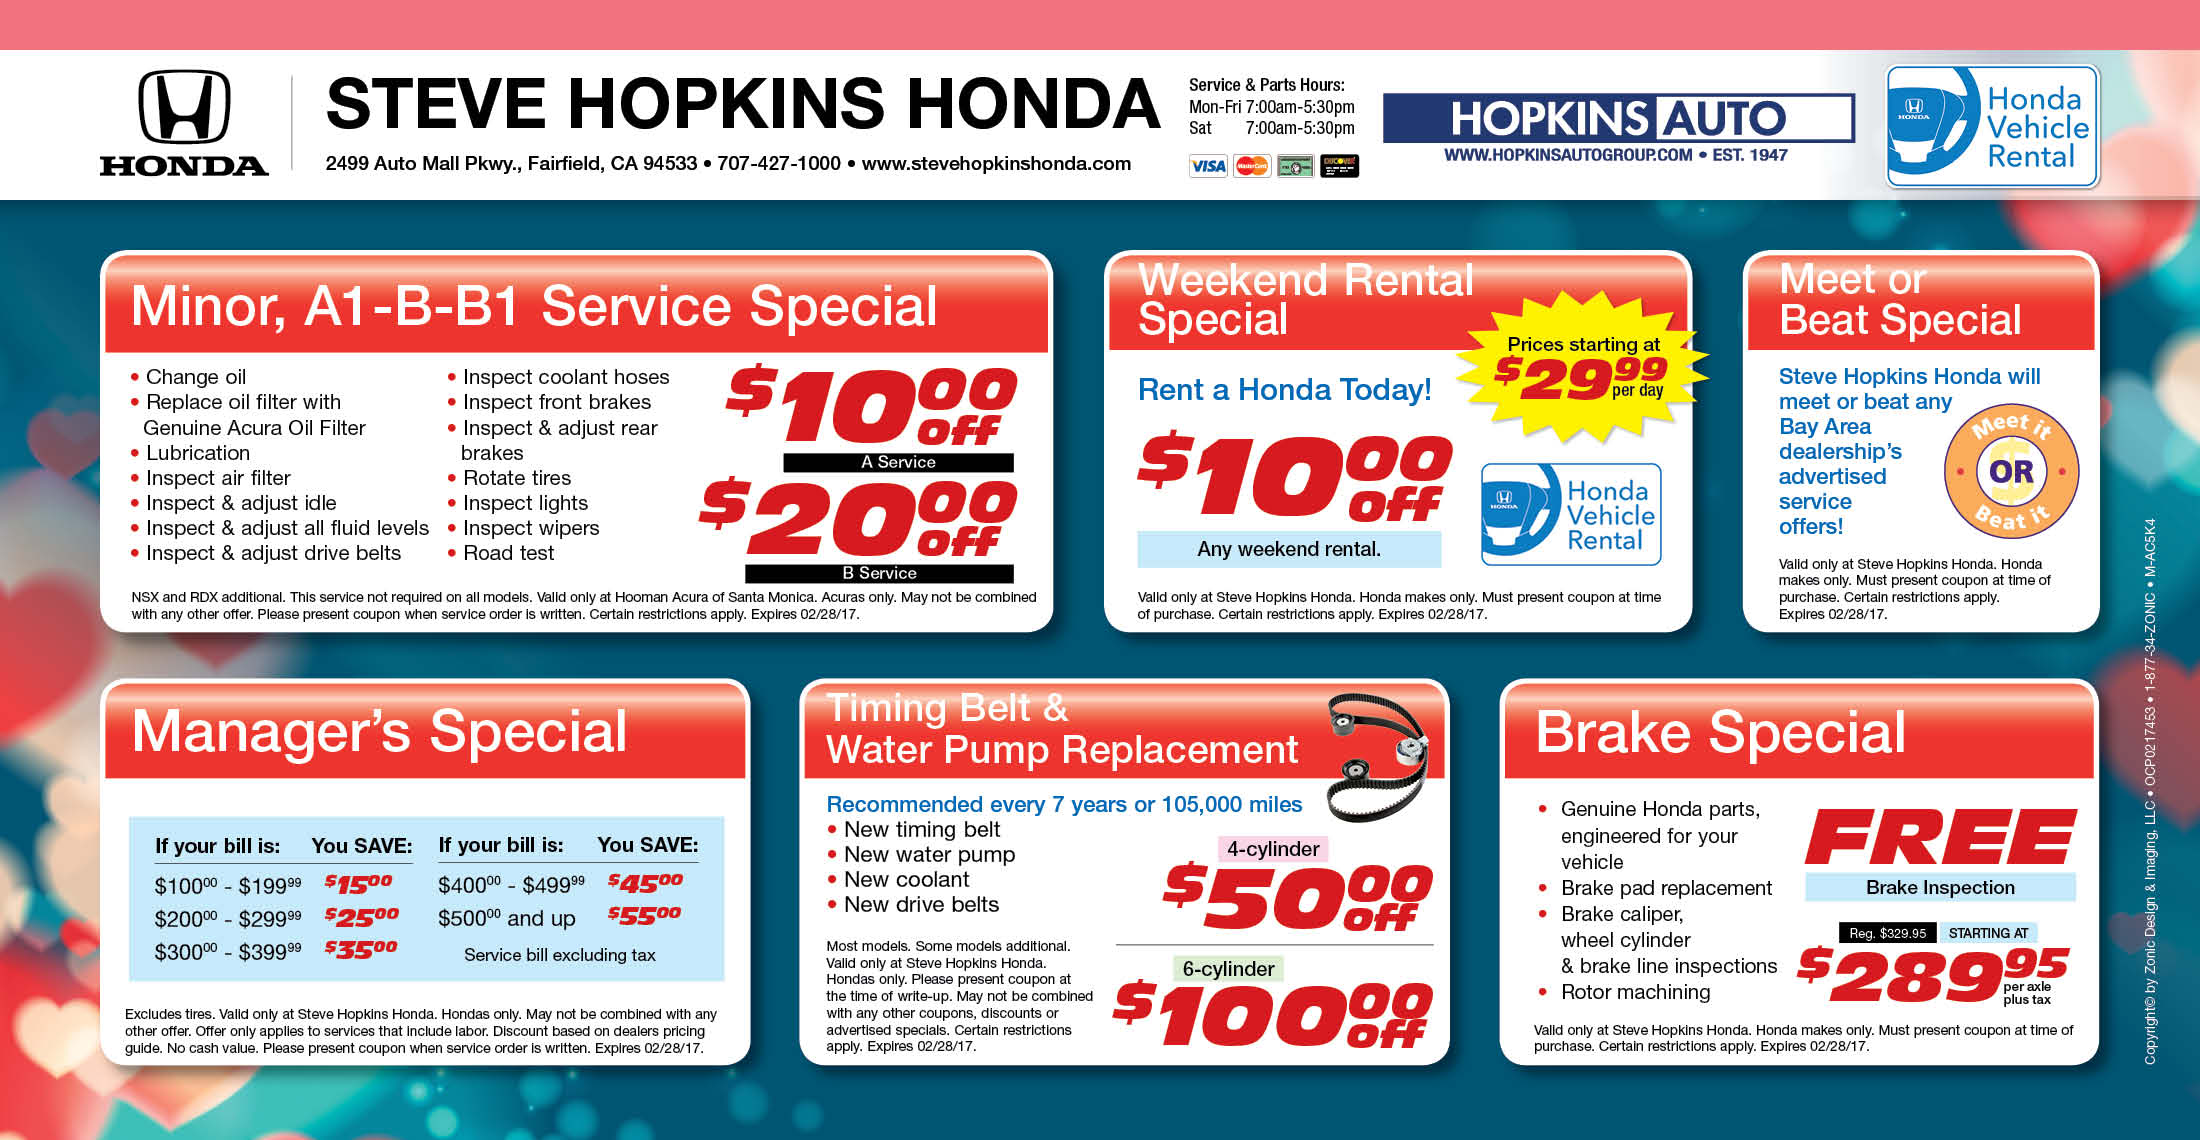 Fairfield honda service coupons steve hopkins honda for Concord honda service coupons